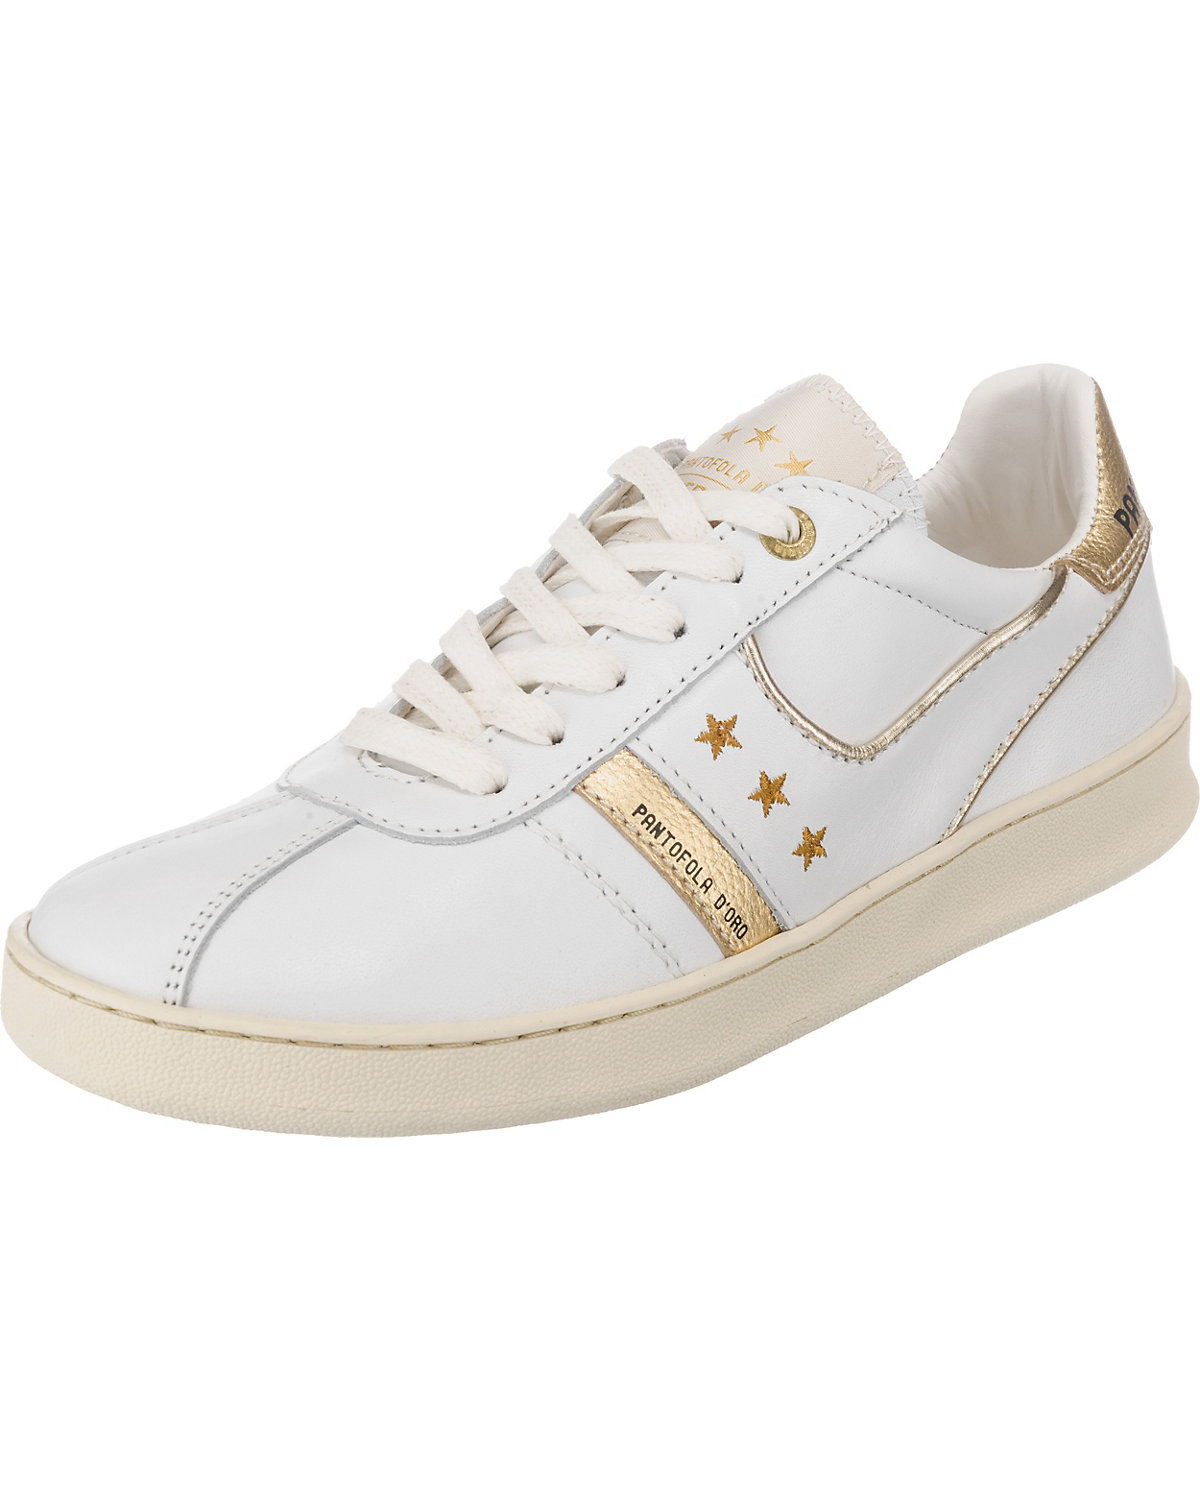 Pantofola d'Oro, COVERCIANO DONNE LOW Sneakers Low, weiß